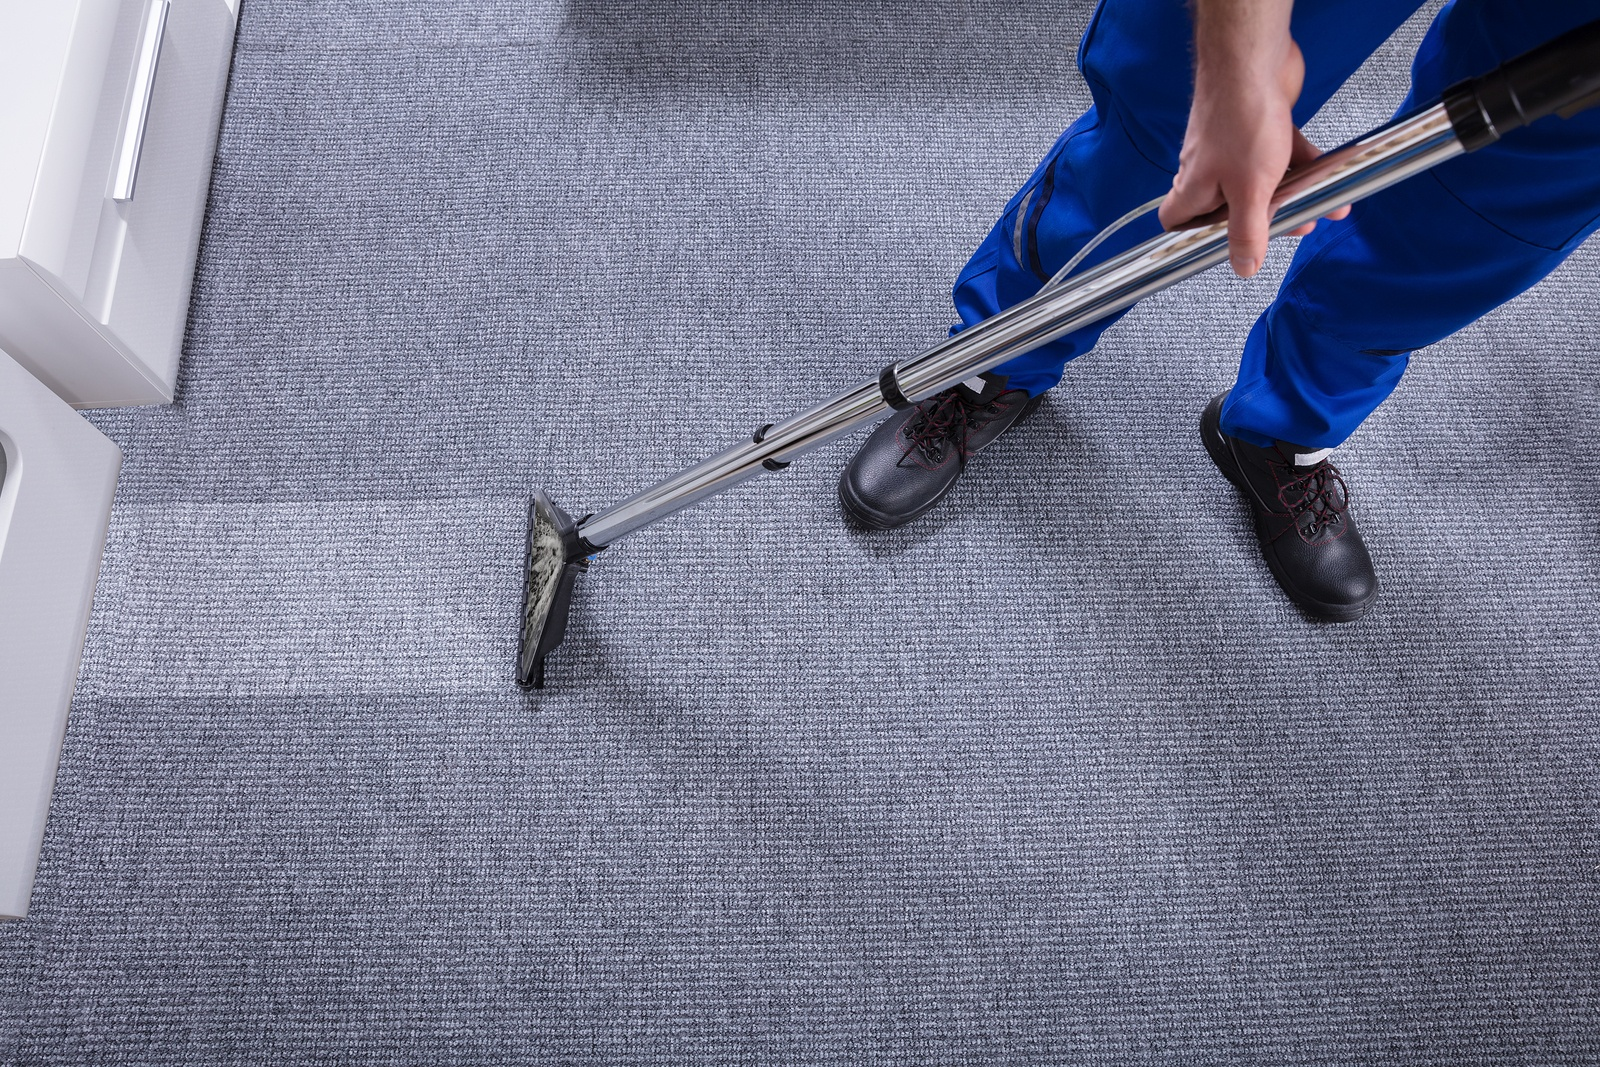 Image result for carpet cleaning companies